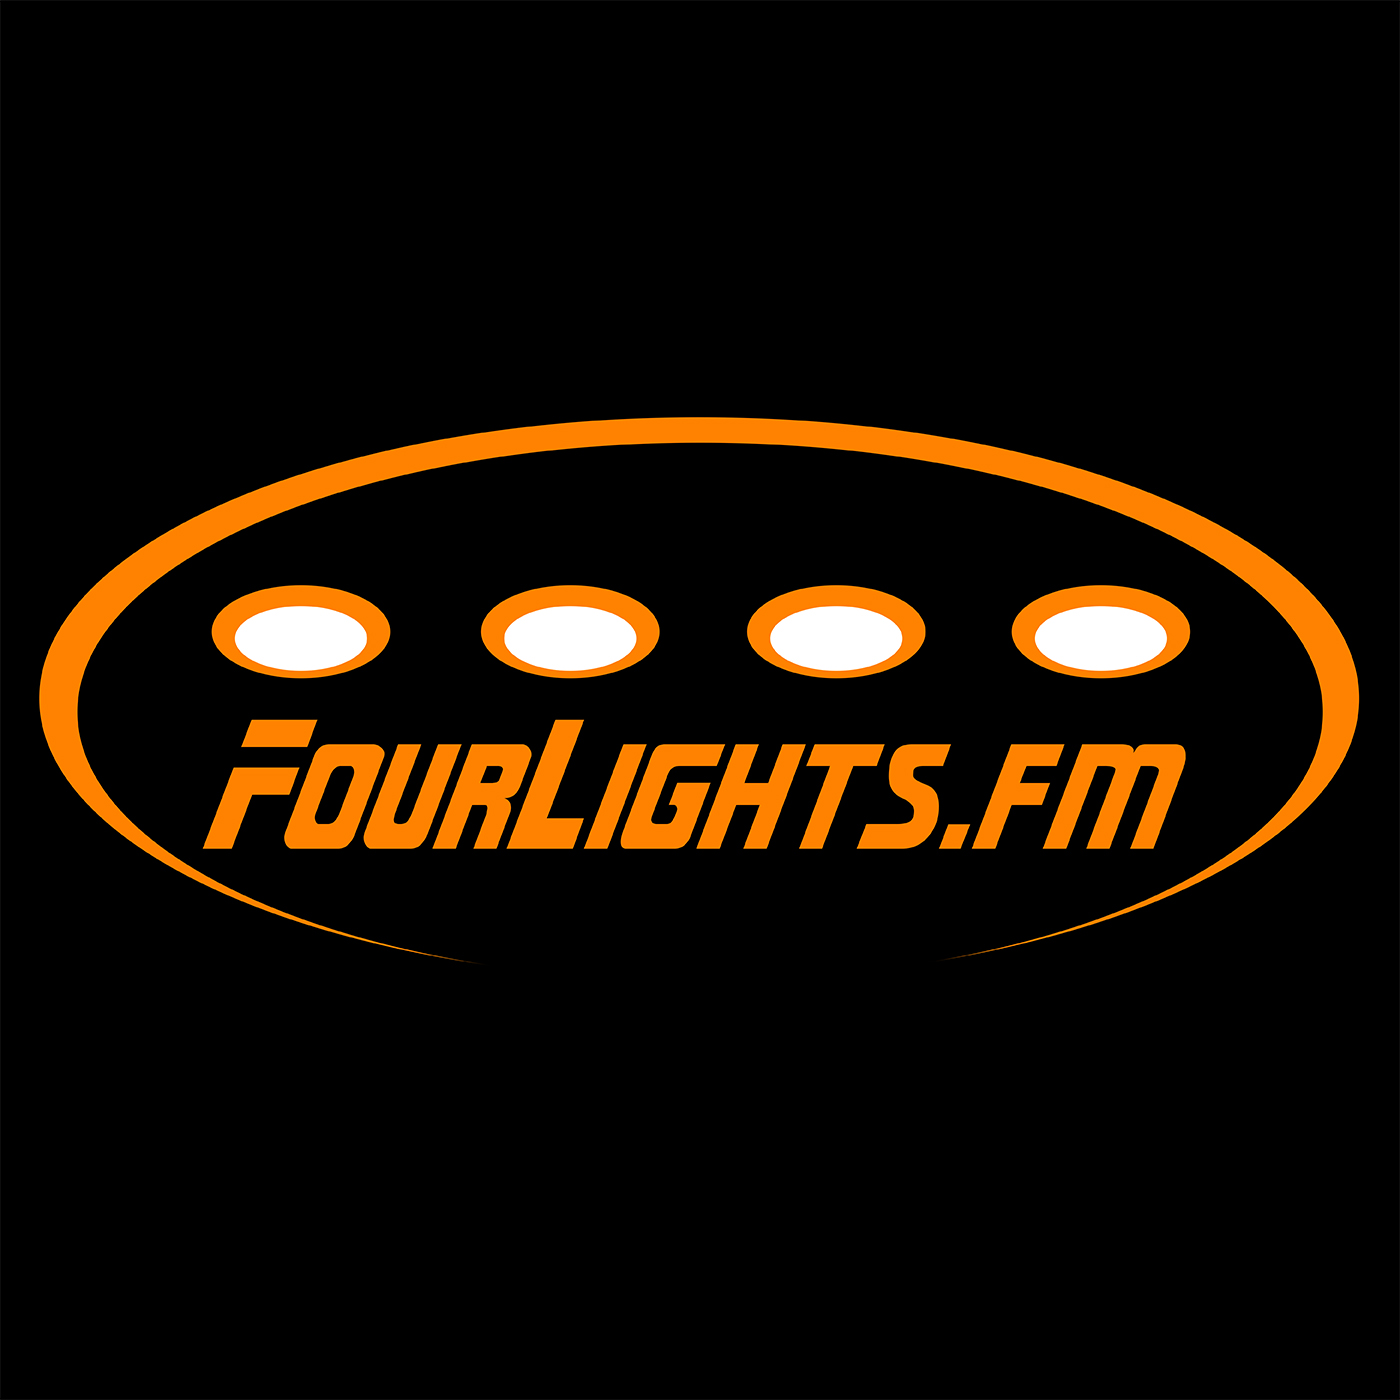 Four Lights FM Master Feed